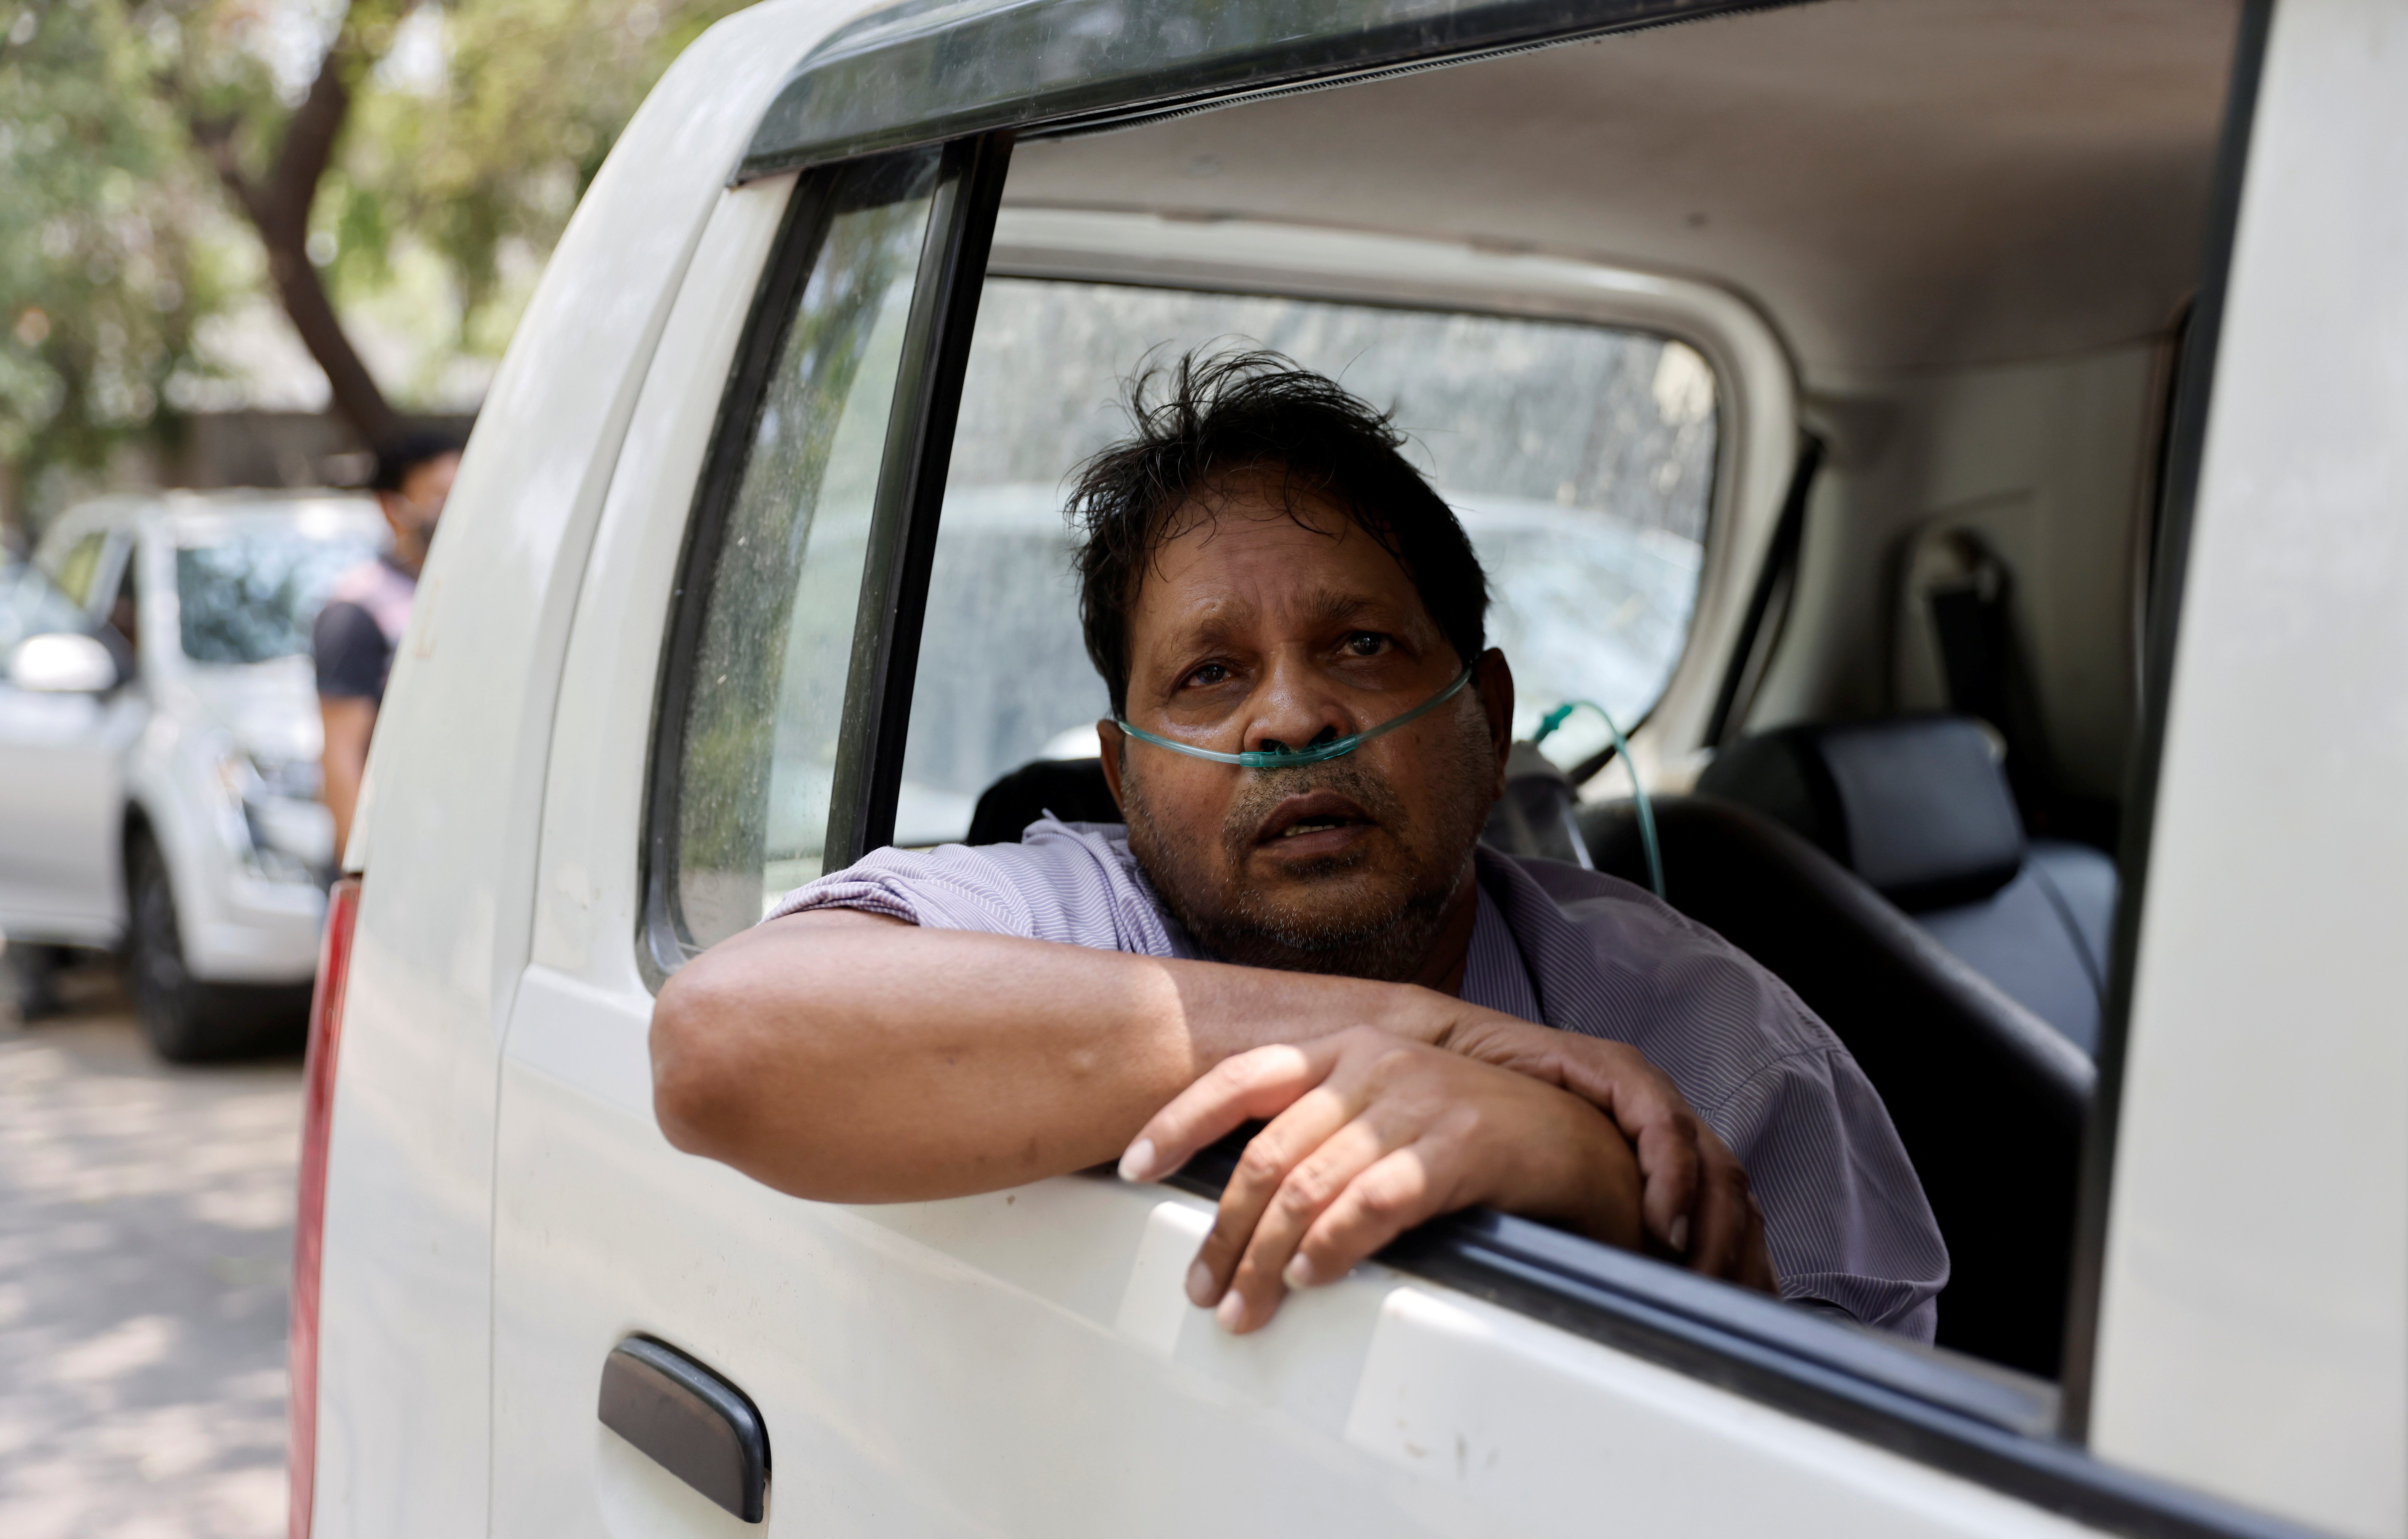 Vijay Gupta, 62, with breathing problem, sits inside a car as he waits to get admission at a COVID-19 hospital for treatment, amidst the spread of the coronavirus disease (COVID-19), in New Delhi, India, May 1, 2021. REUTERS/Danish Siddiqui